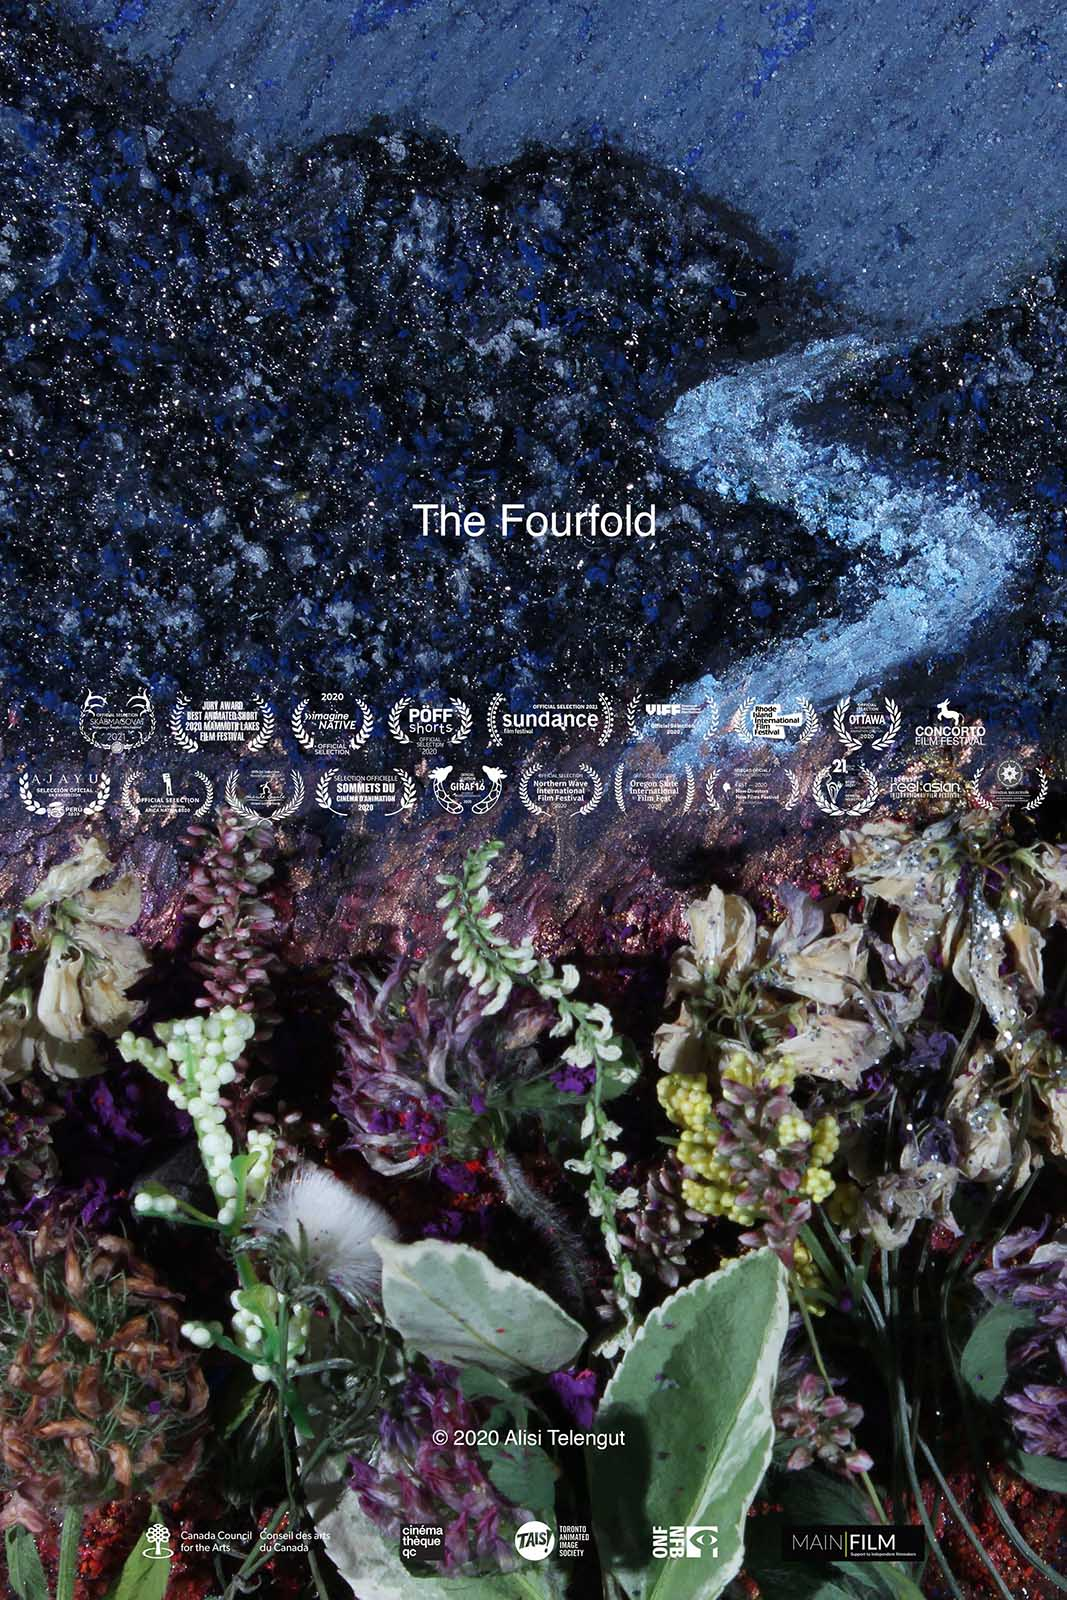 'The Fourfold' is one of the most innovative short film releases in 2021 so far. Hear about the film from the director Alisi Telengut.